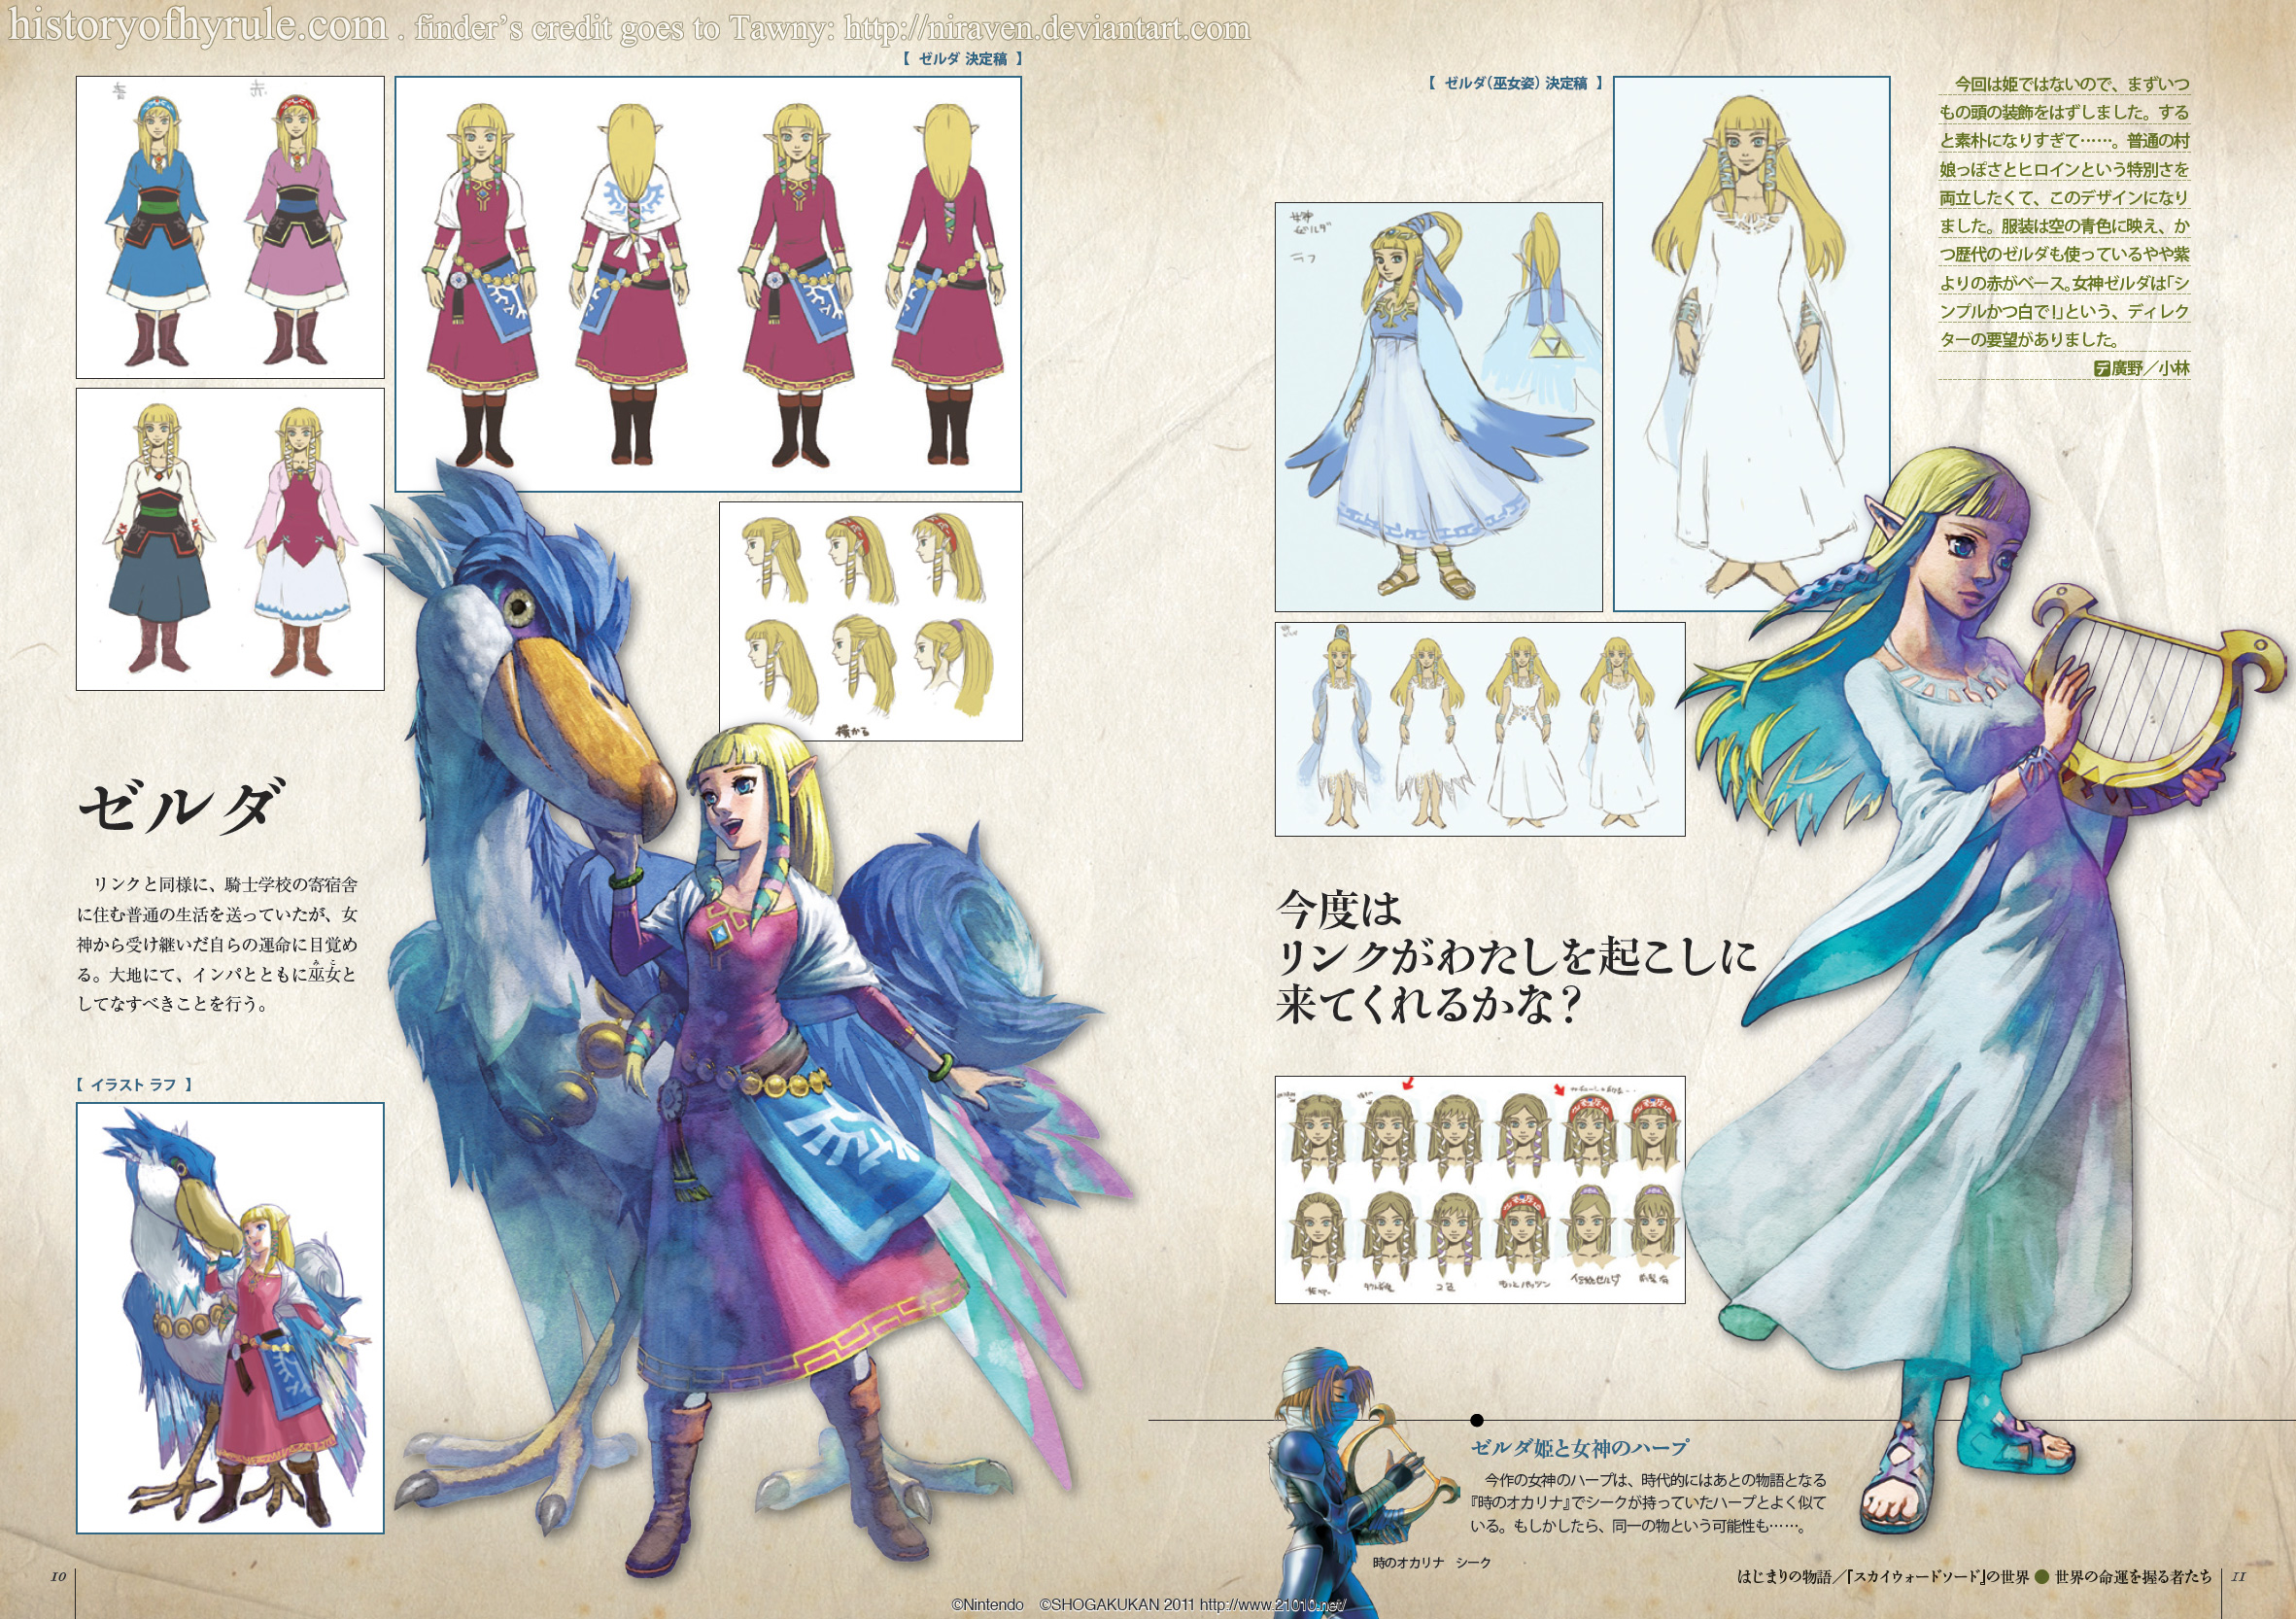 New Hyrule Historia Preview Shows Never Before Seen Midna Concept Art Nintendo Everything